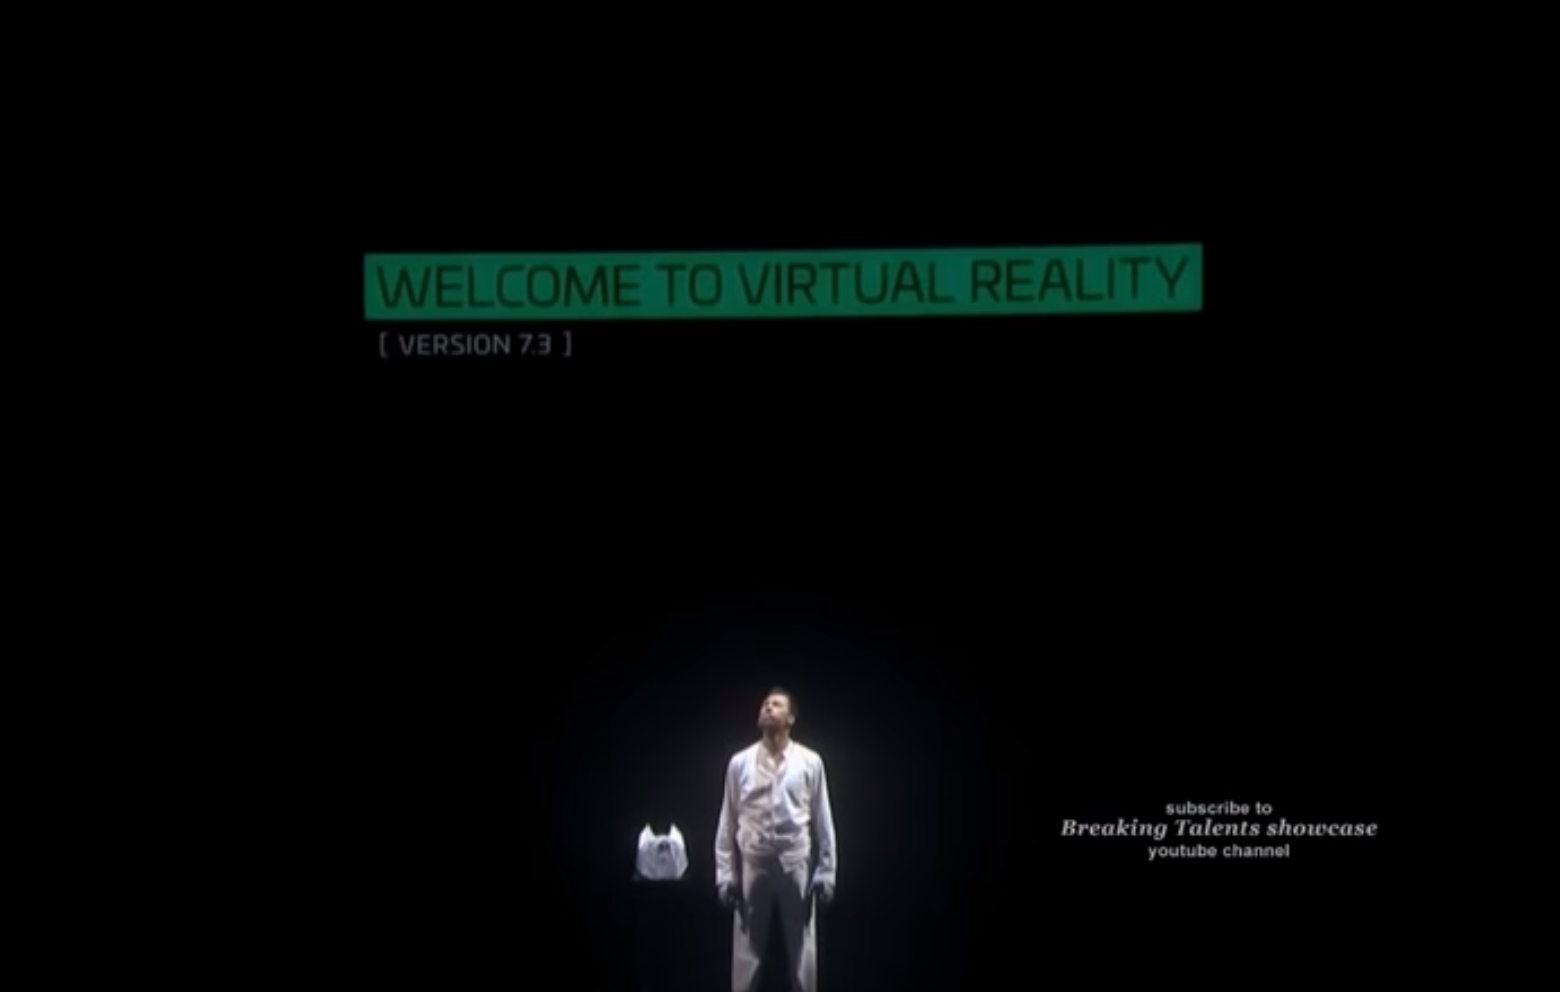 Mixed Reality, Extended Reality, Virtual Reality, Augumented Reality